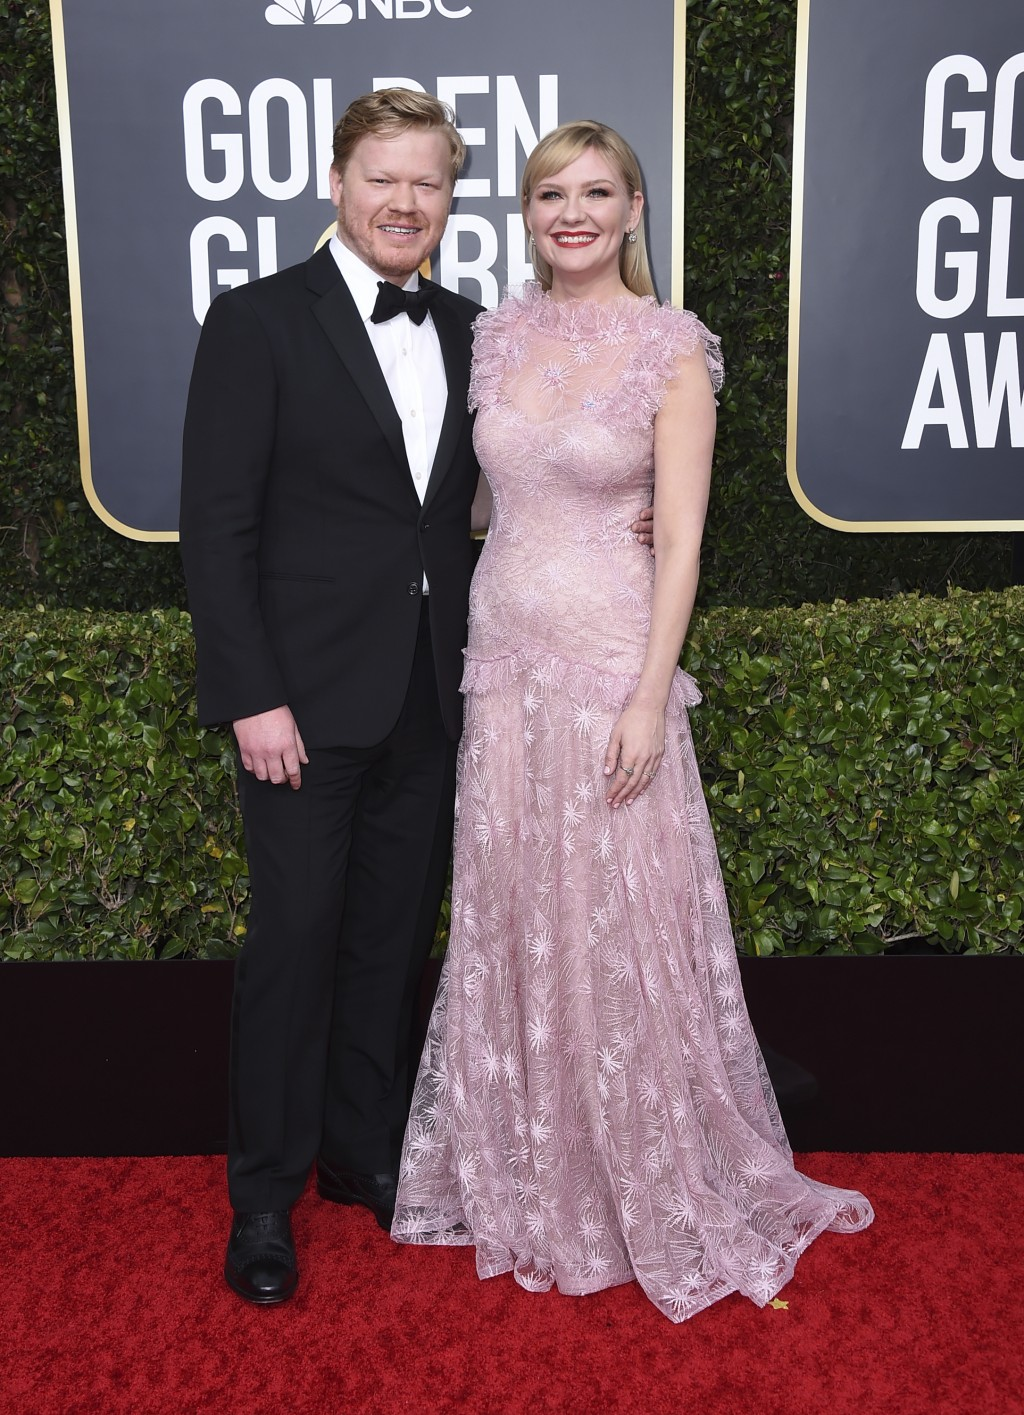 Kirsten Dunst, right, and Jesse Plemons arrive at the 77th annual Golden Globe Awards at the Beverly Hilton Hotel on Sunday, Jan. 5, 2020, in Beverly ...